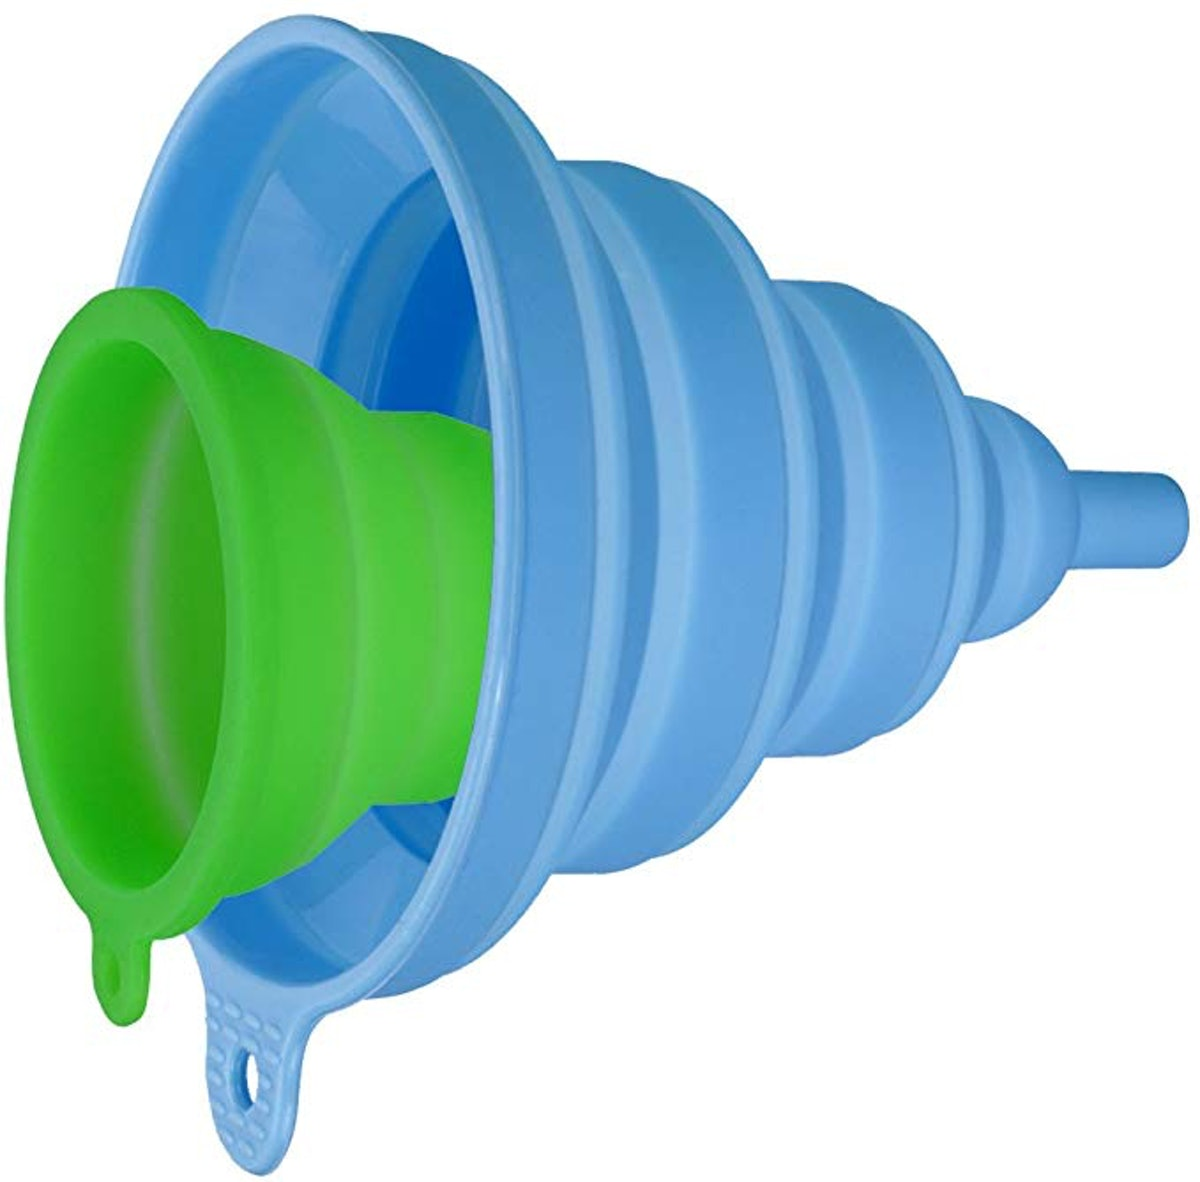 INMAKER Collapsible Funnel Set (2-Pack)